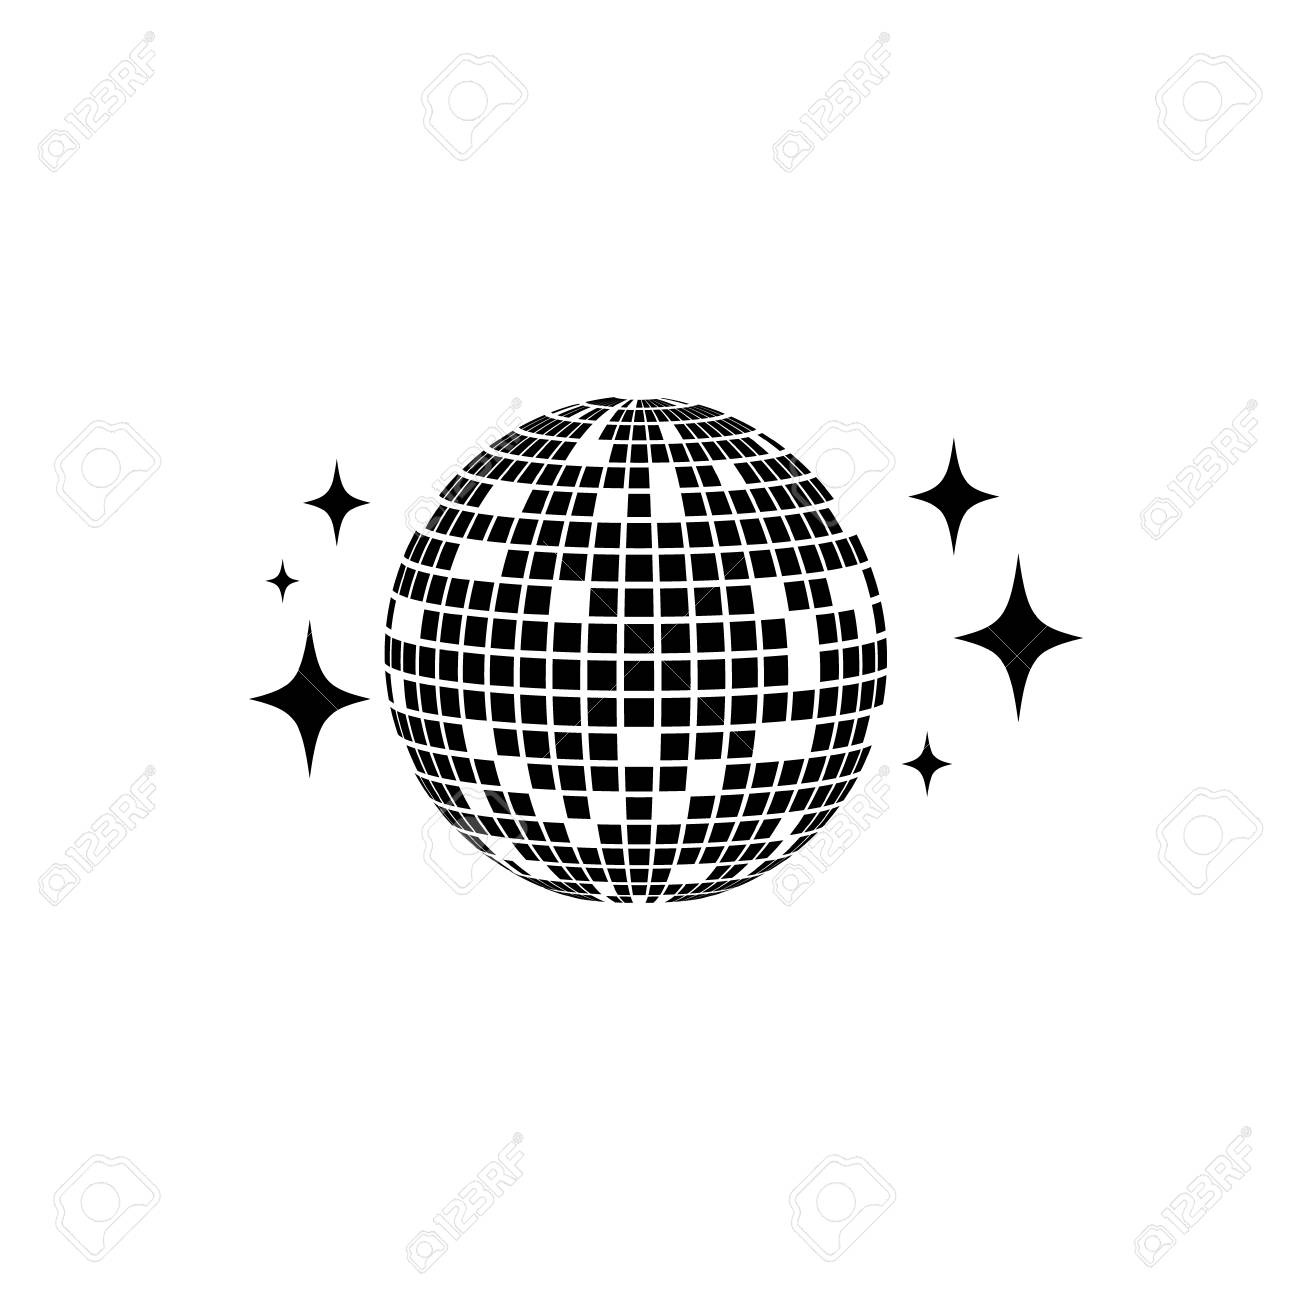 disco ball vector icon isolated club ball for party disco rh 123rf com disco ball vector png disco ball vector download